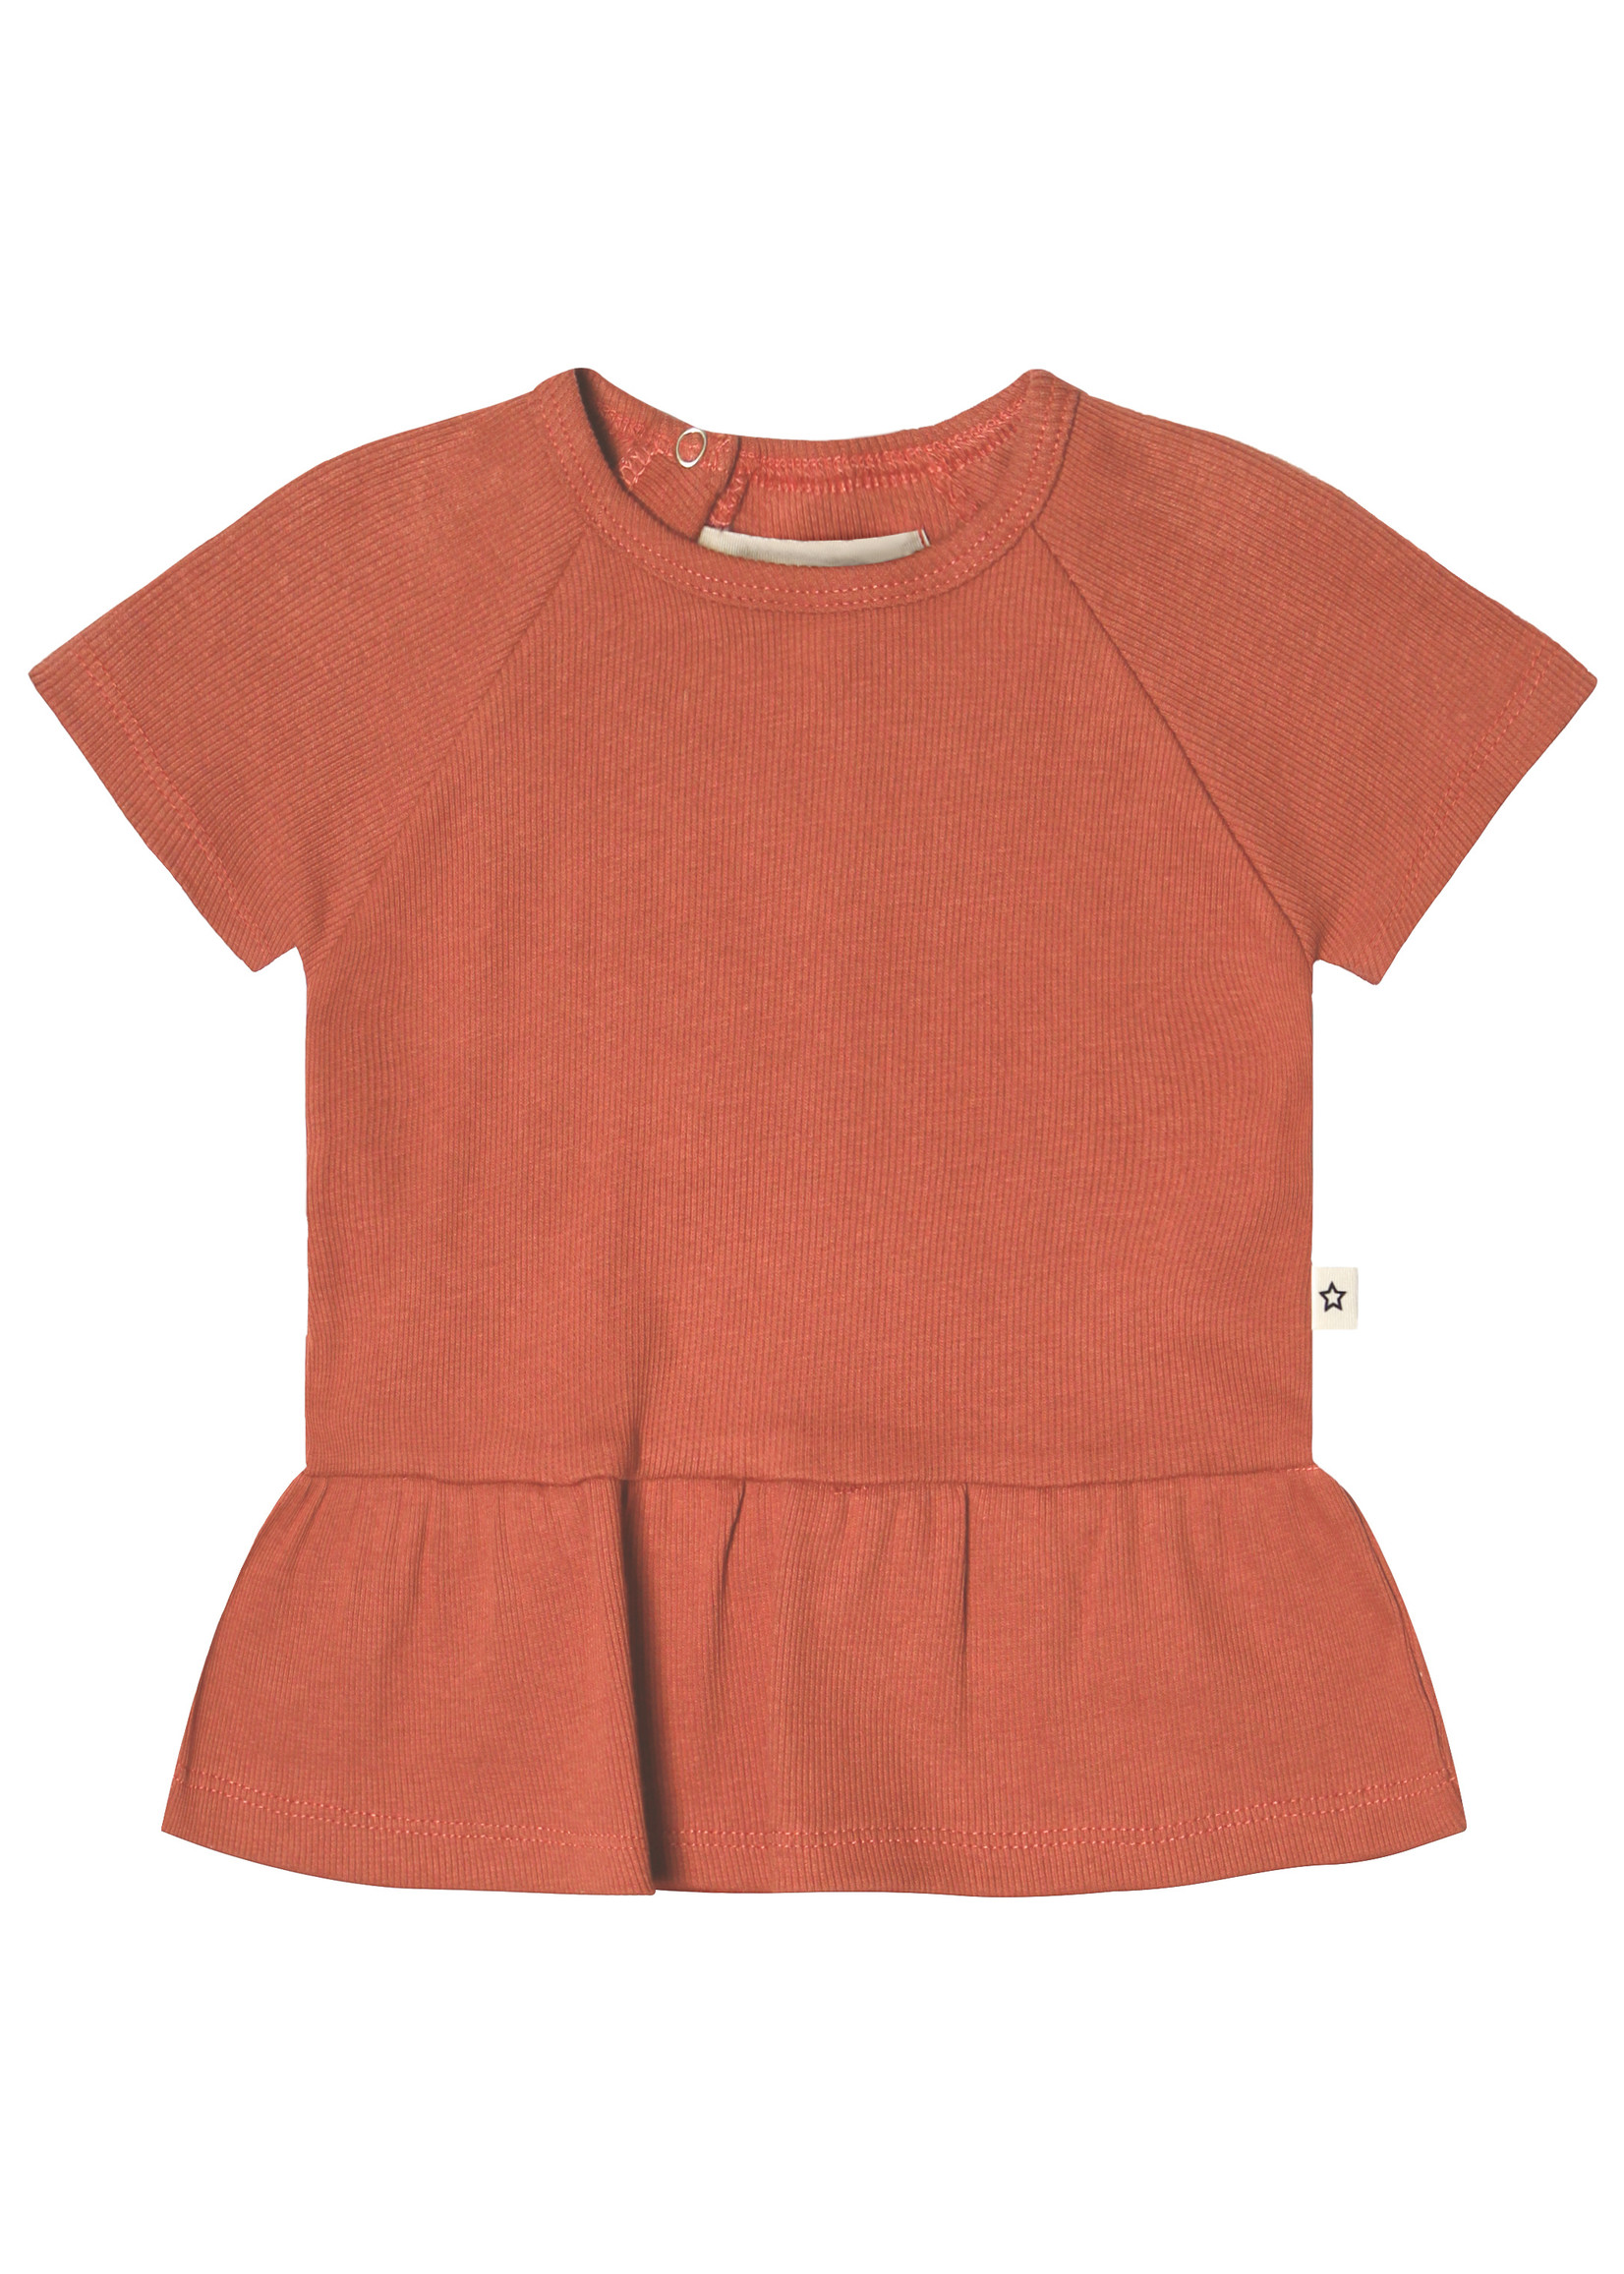 Your Wishes YW - Rib Terra | SS Shift Top